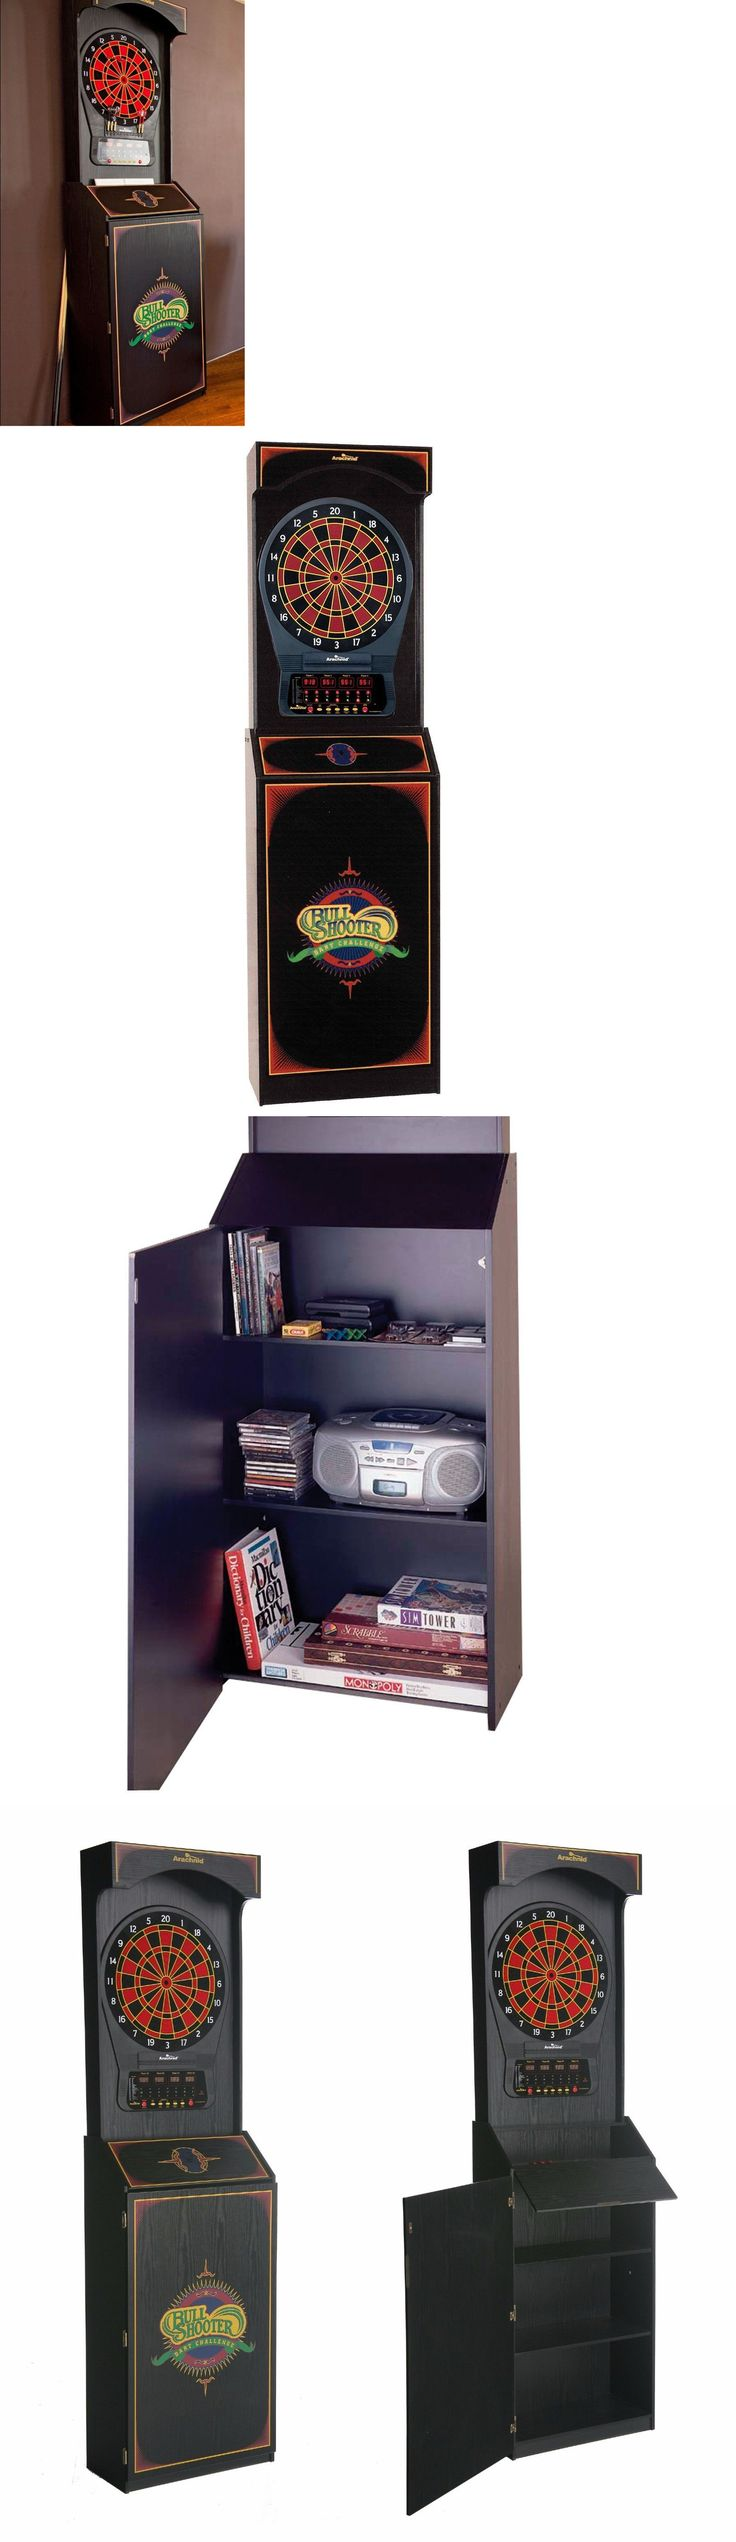 Dart Boards 72576: Electronic Dart Board Arcade Style Cabinet Arachnid Cricket Pro Game Room Expert -> BUY IT NOW ONLY: $397.96 on eBay!